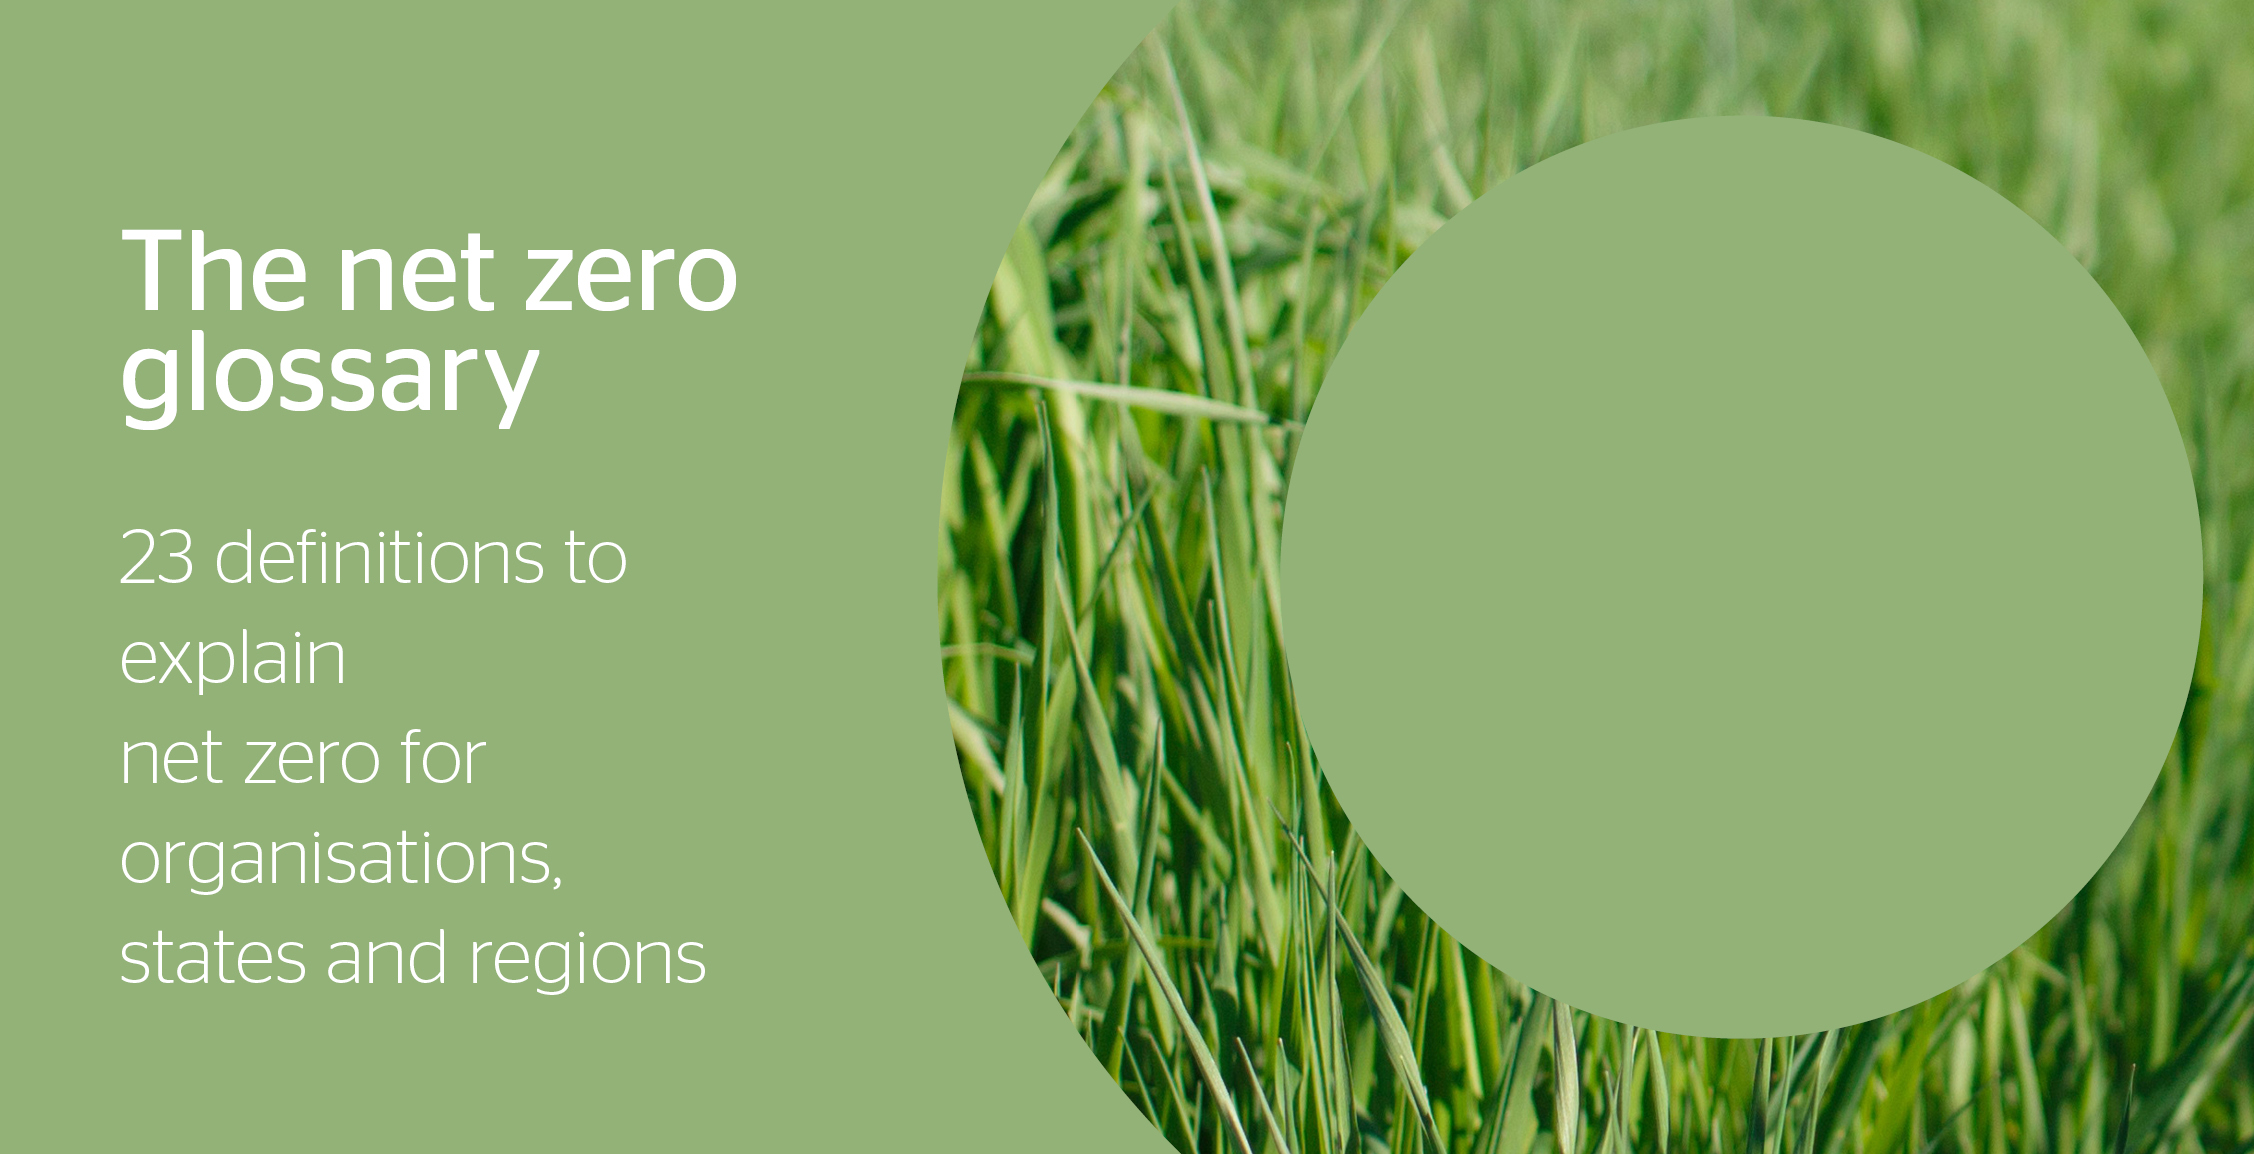 23 definitions for Net Zero glossary